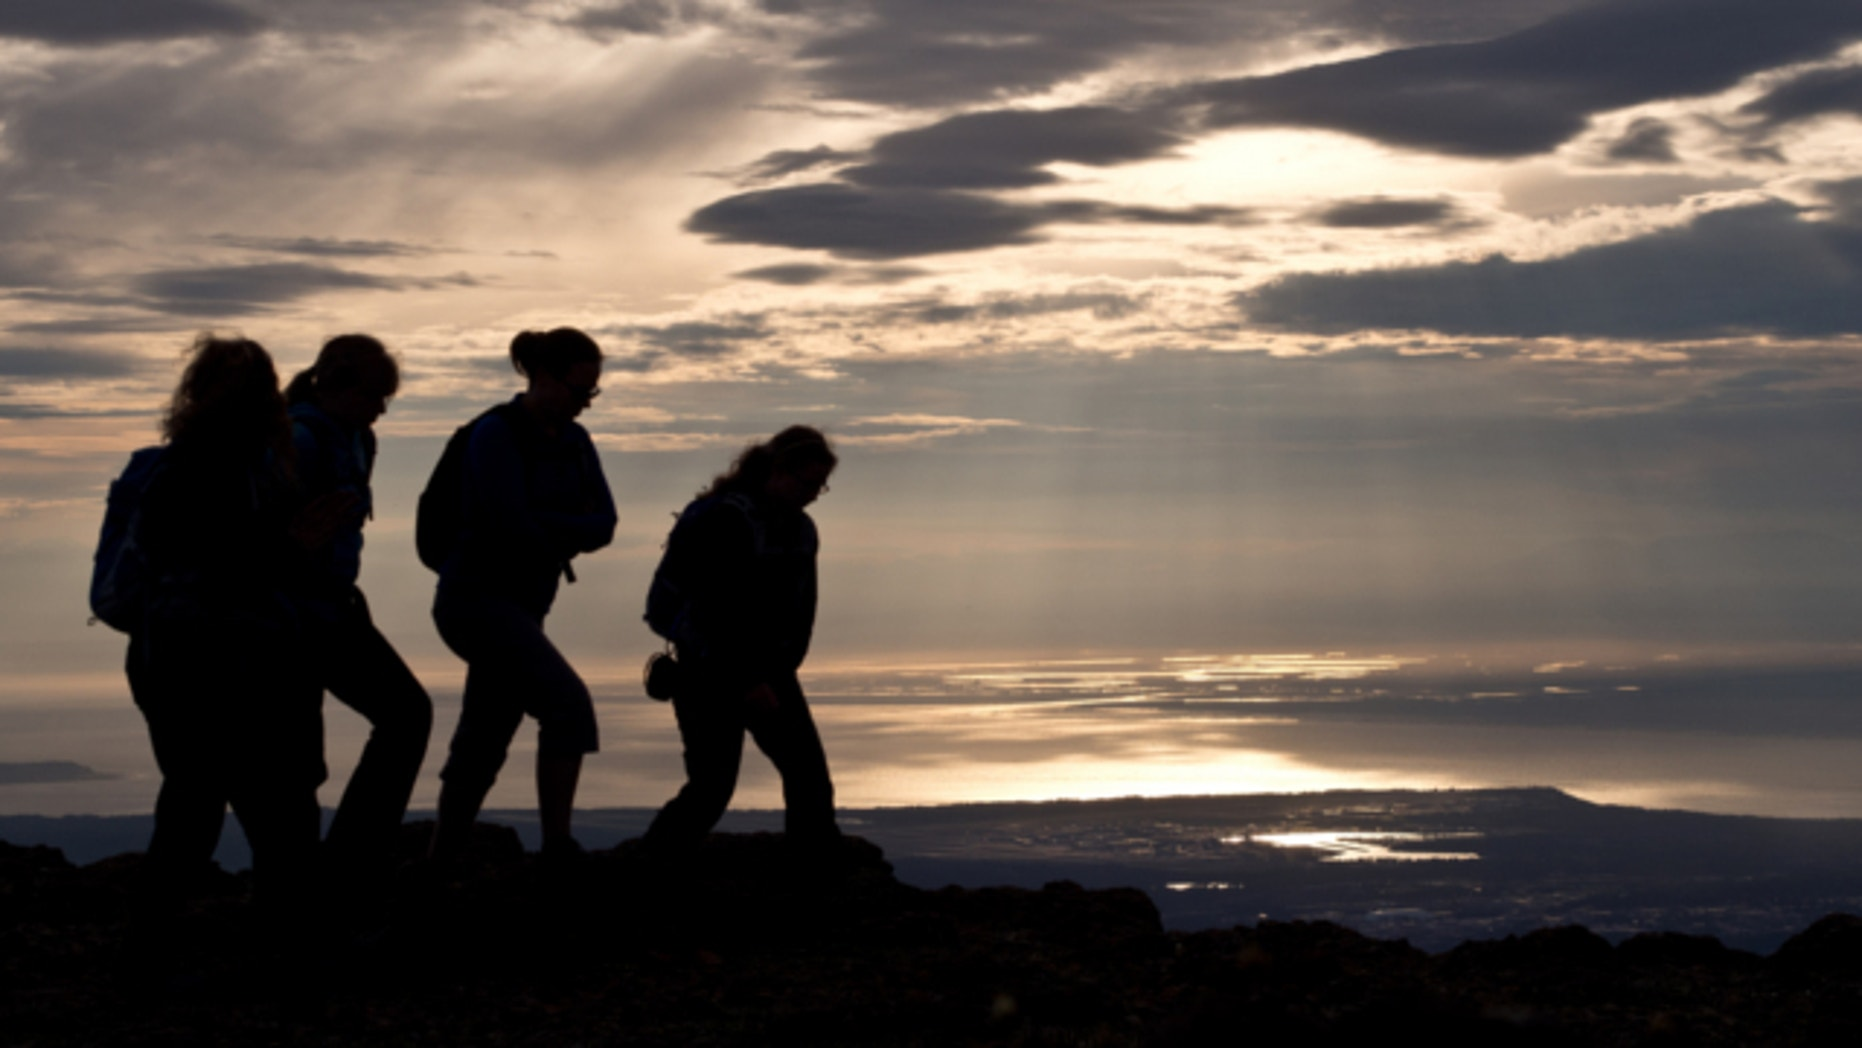 June 20, 2013: Hikers take in the view of Anchorage, Alaska, on the evening of summer solstice.